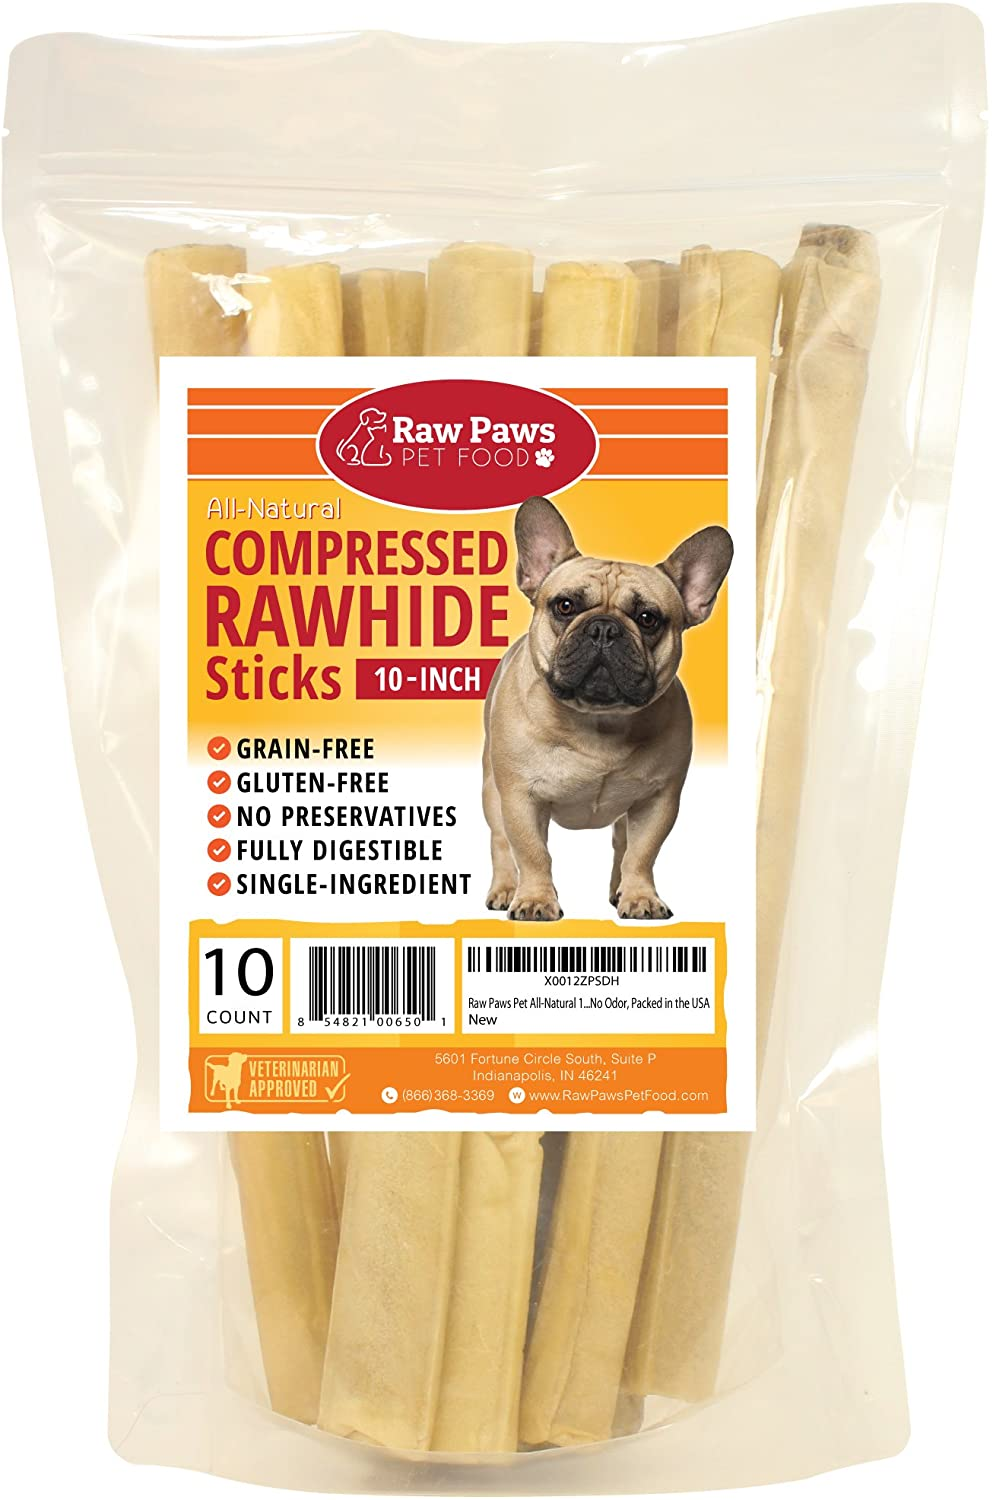 Raw Paws Compressed Rawhide Stick Dog Treats